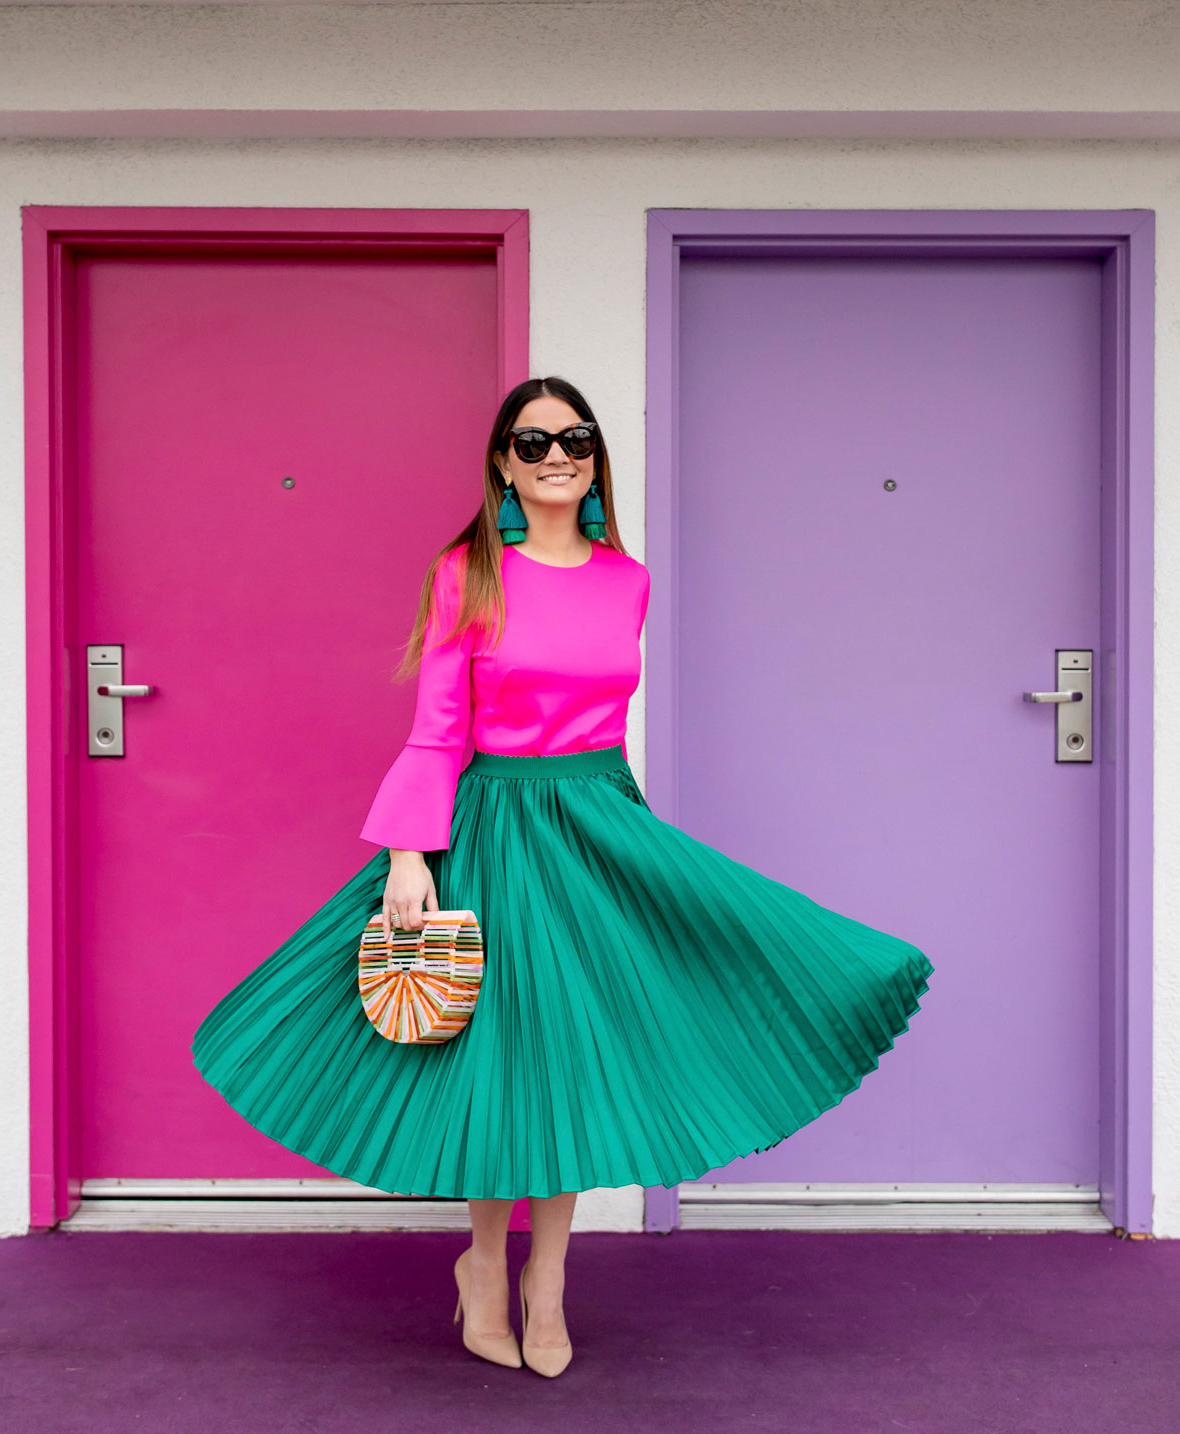 WEAR GREEN AND PINK